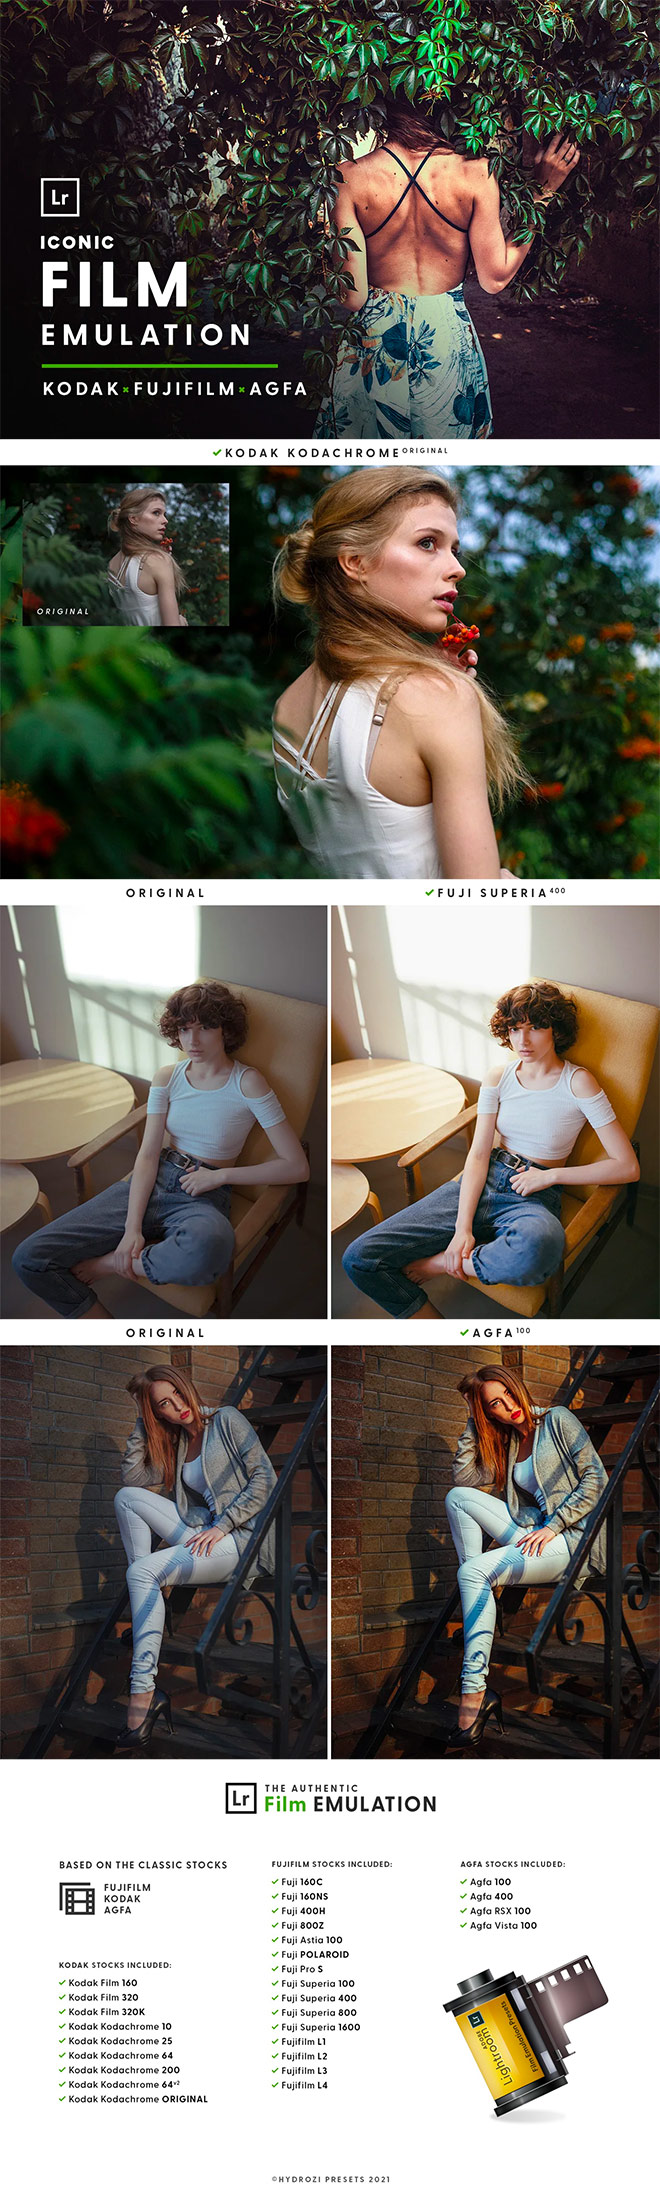 Film Emulation Lightroom Presets for Premium Members